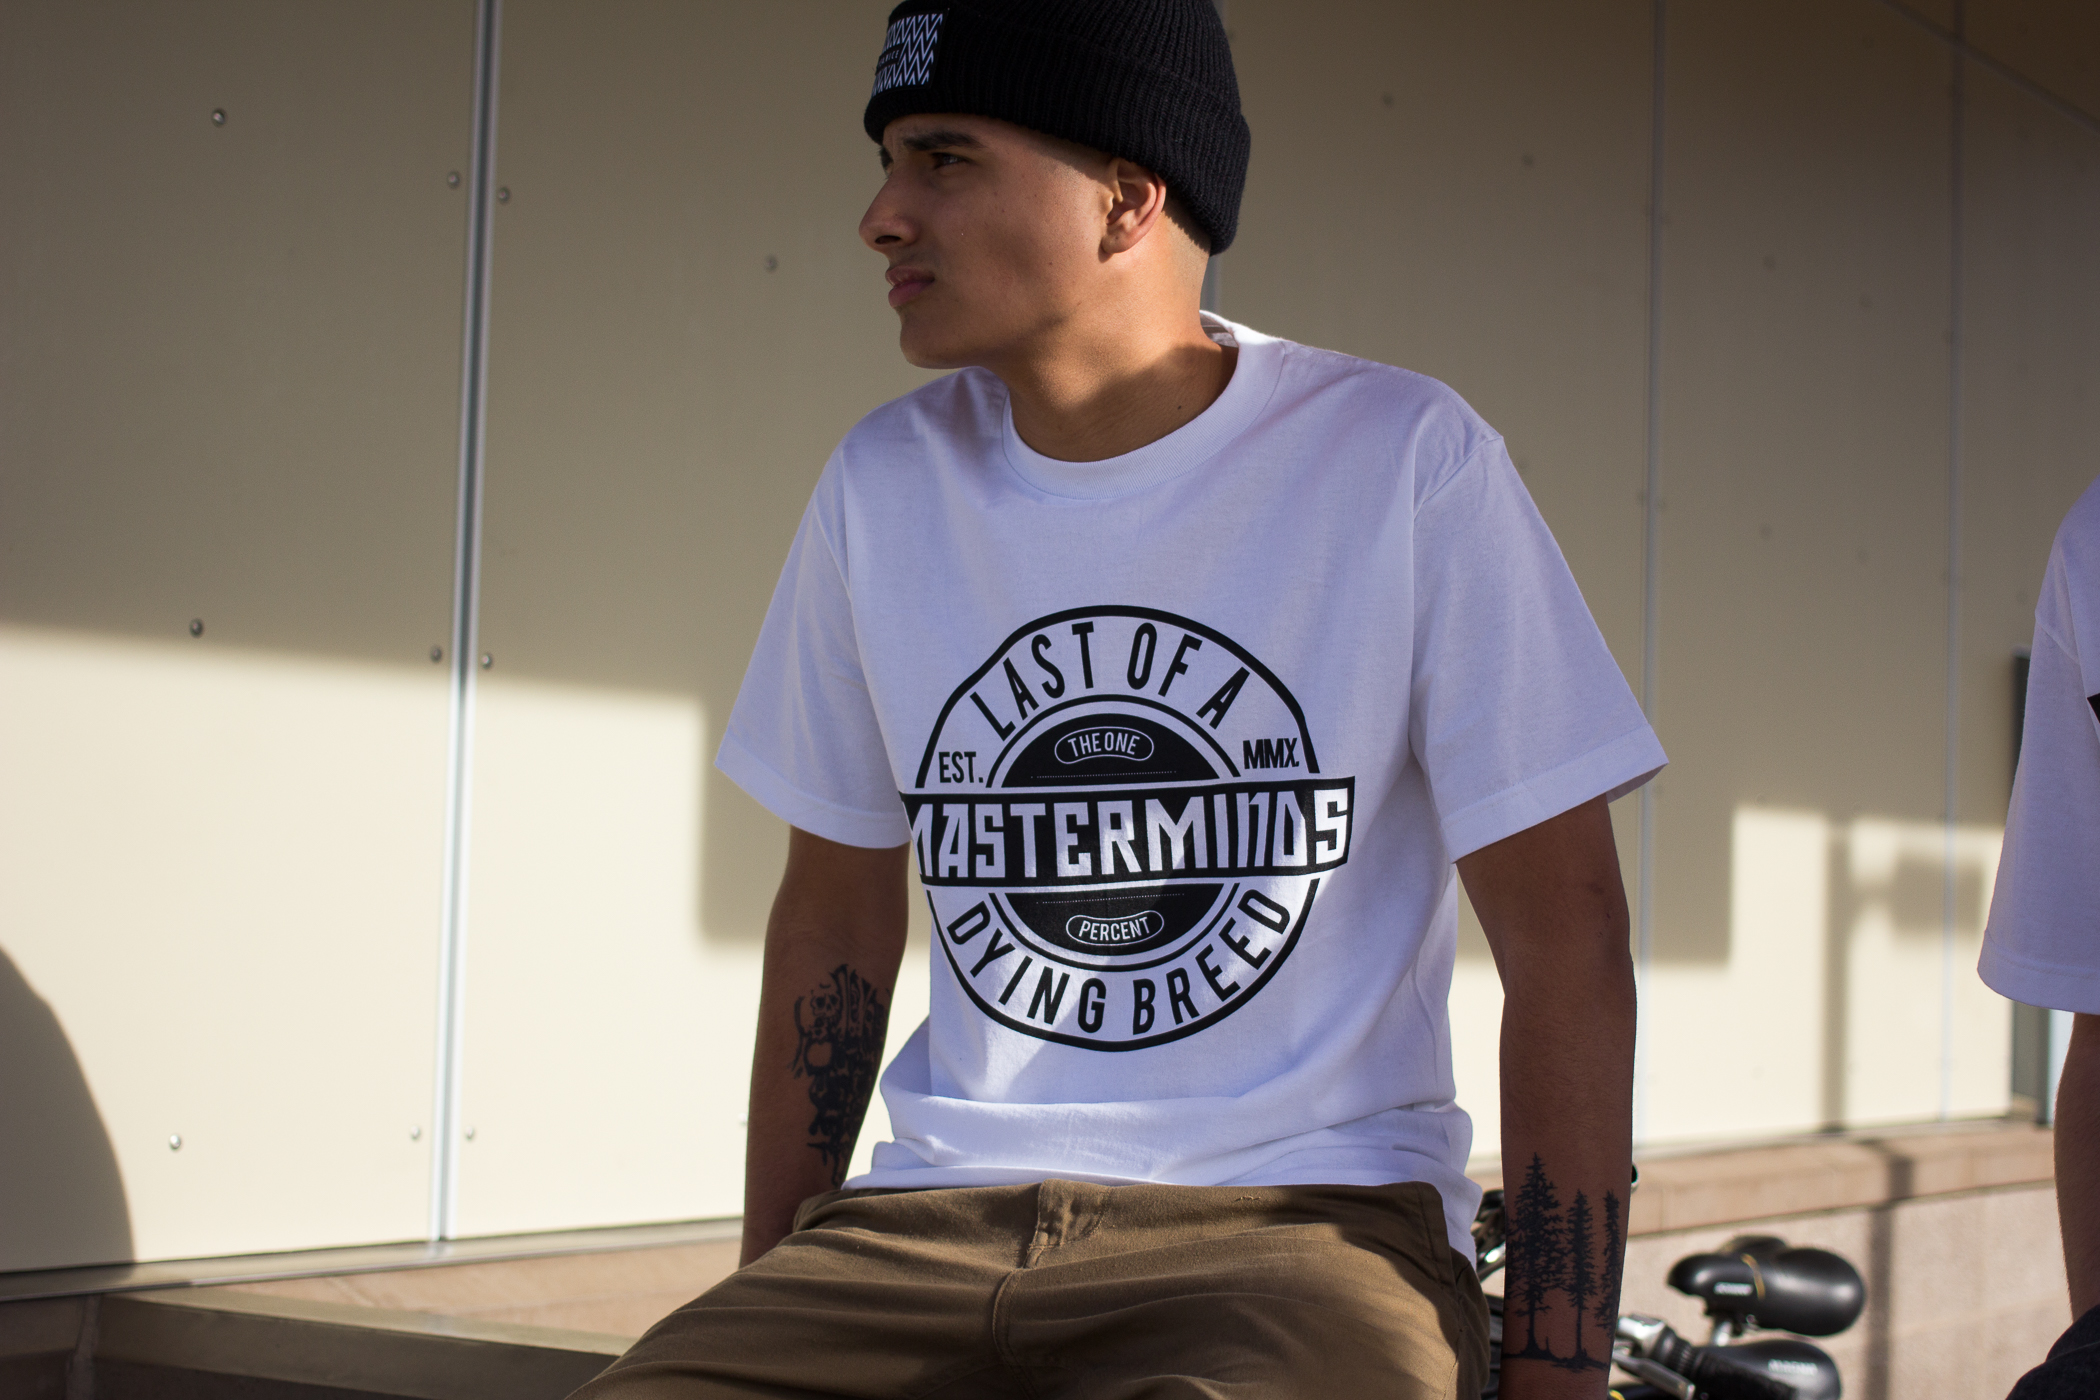 Last Of A Dying Breed Masterminds T-Shirt